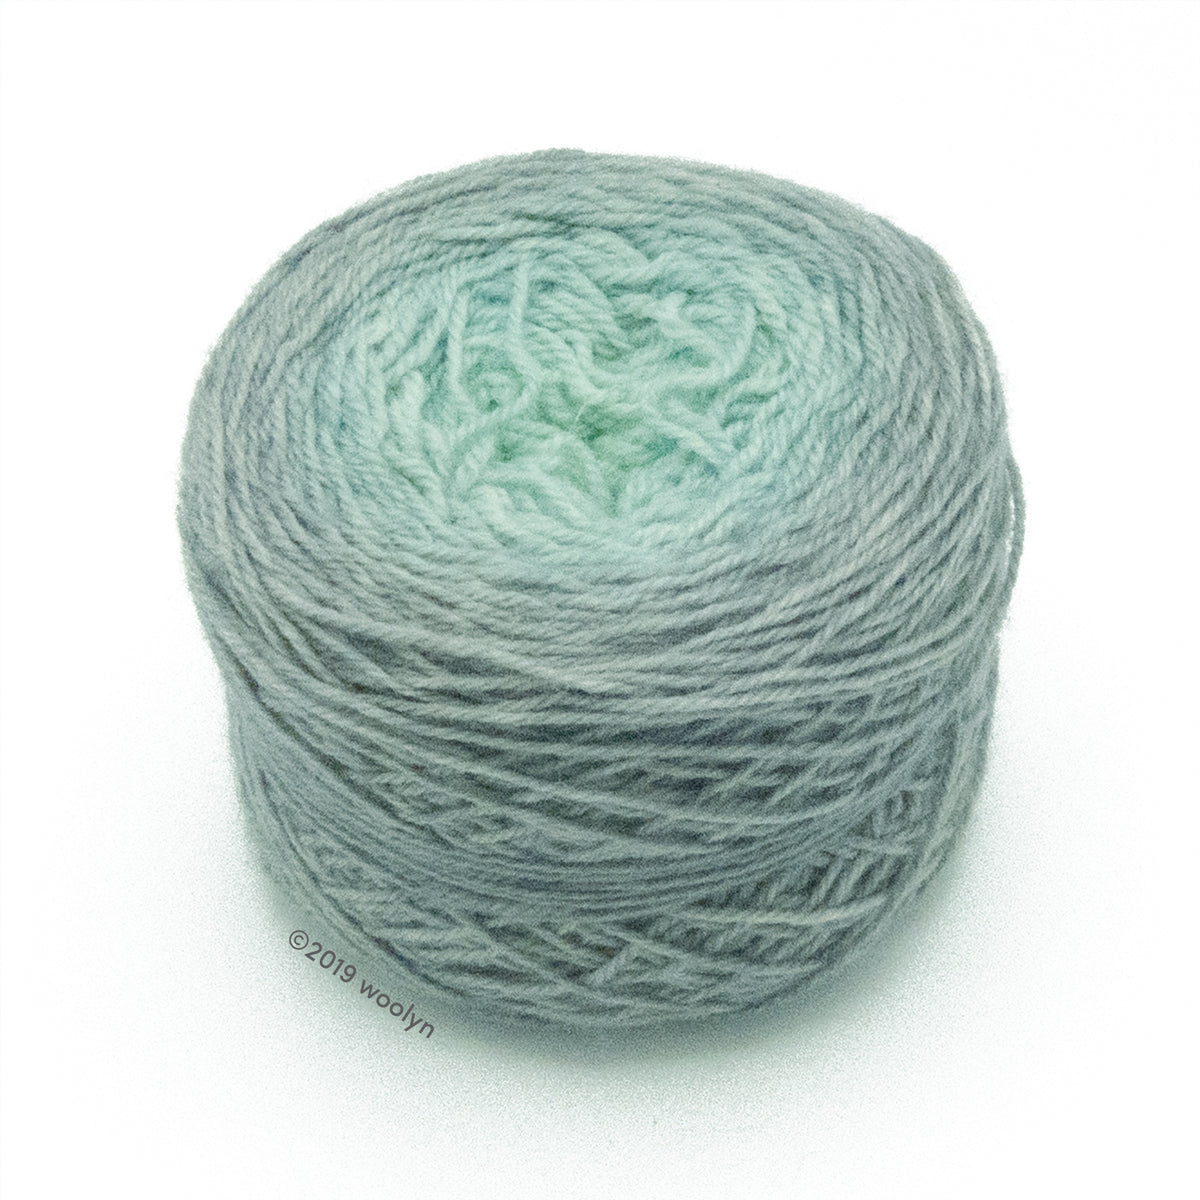 A wound cake of hand dyed fingering weight yarn from Apple Tree Knits..  Yarn is a gradient from medium grey to light pale blue.